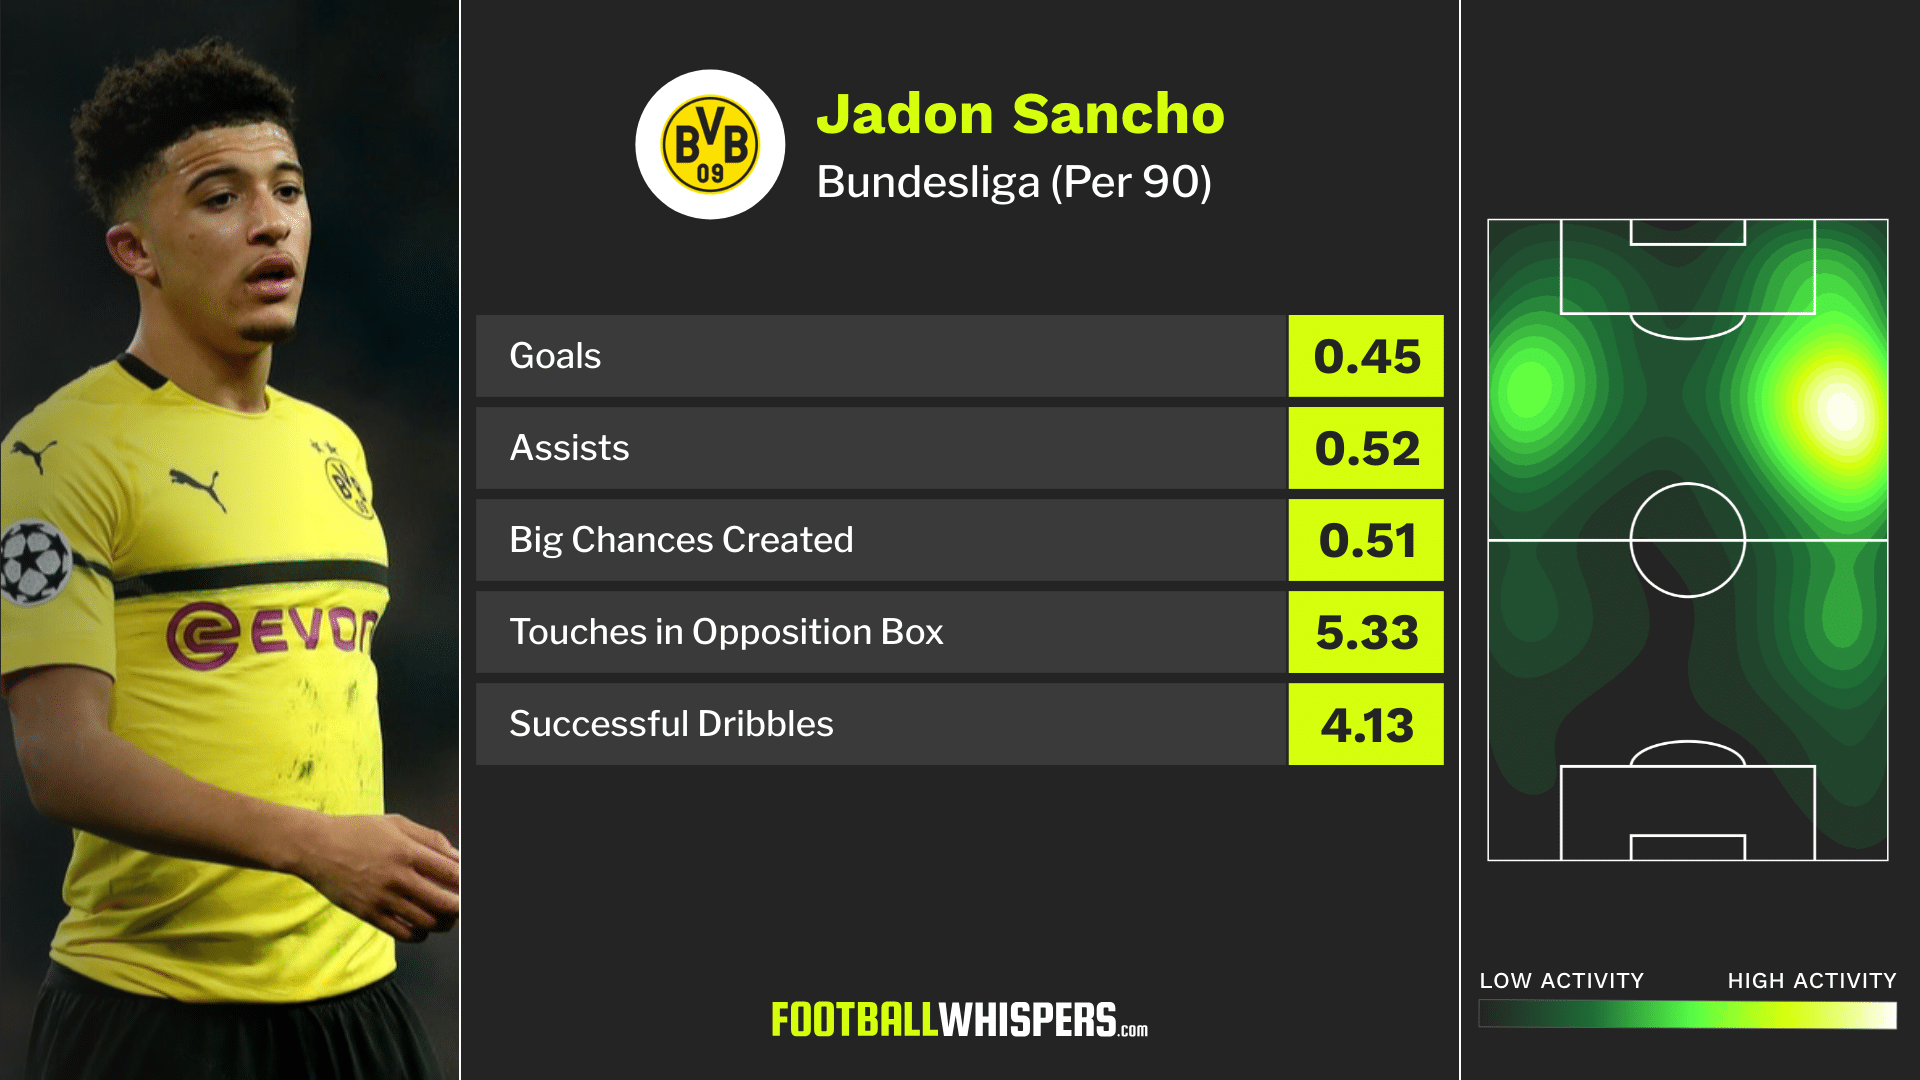 Sancho can be Liverpool's heir to Salah or Mané